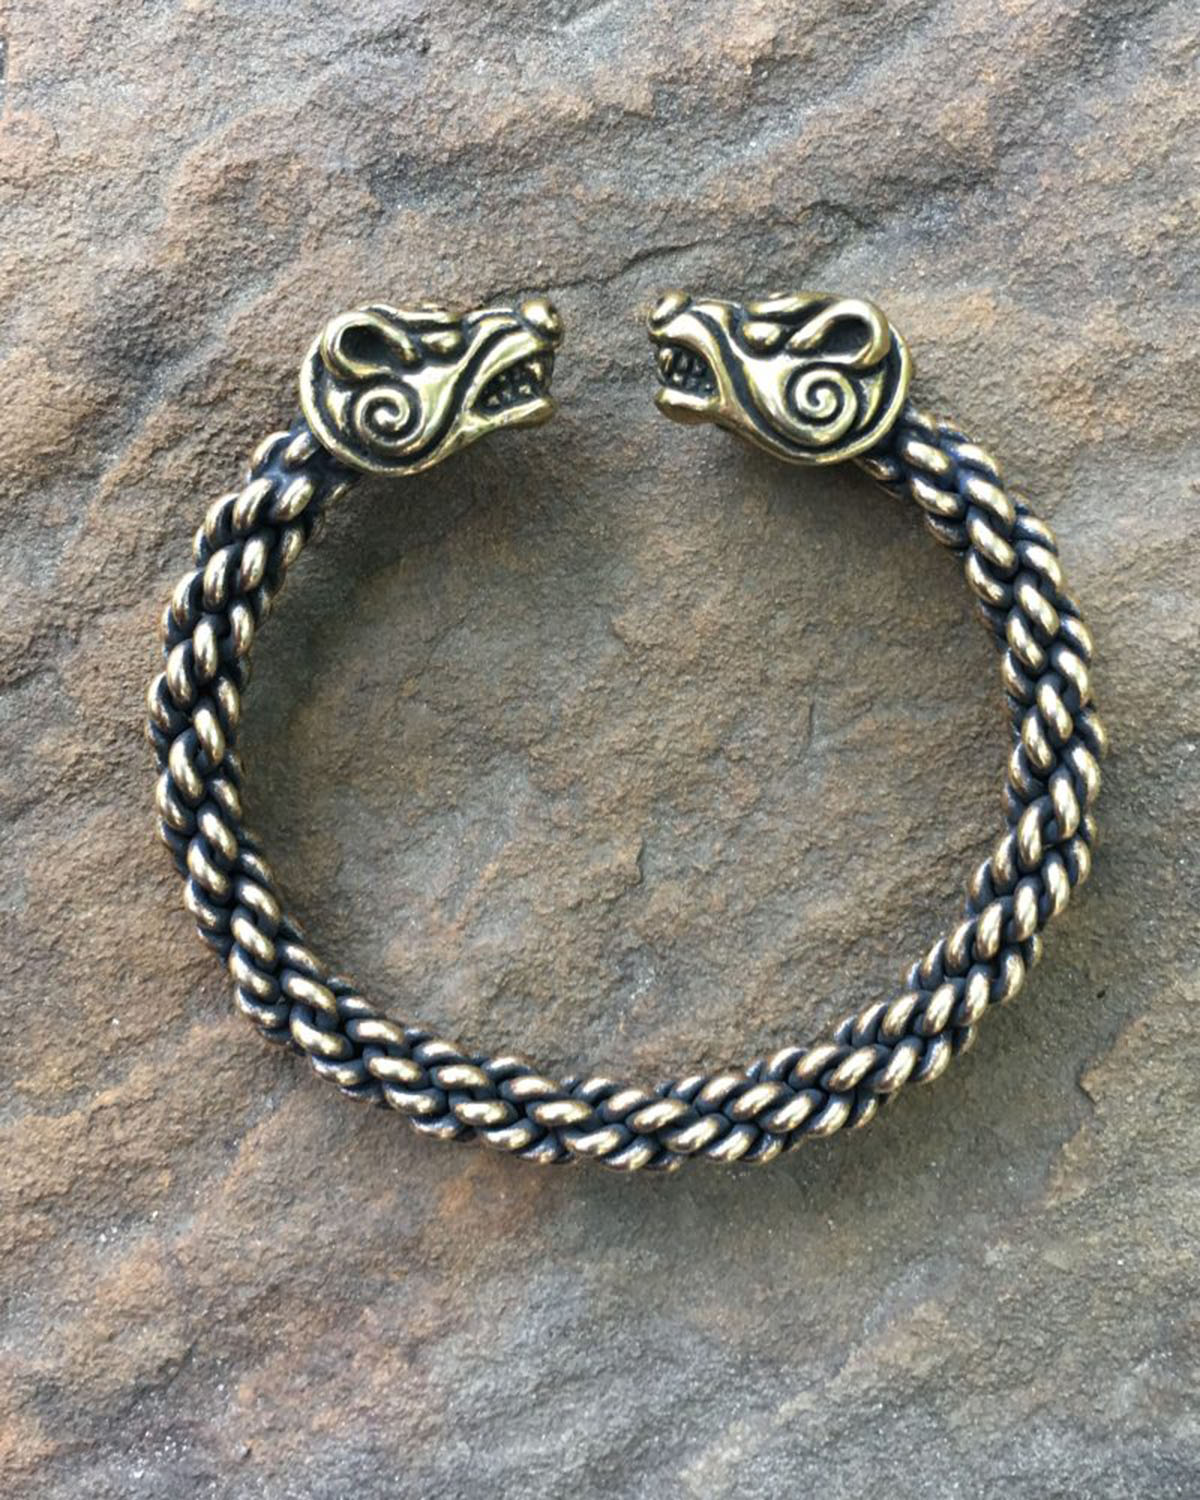 Bear Bracelet Medium Braid